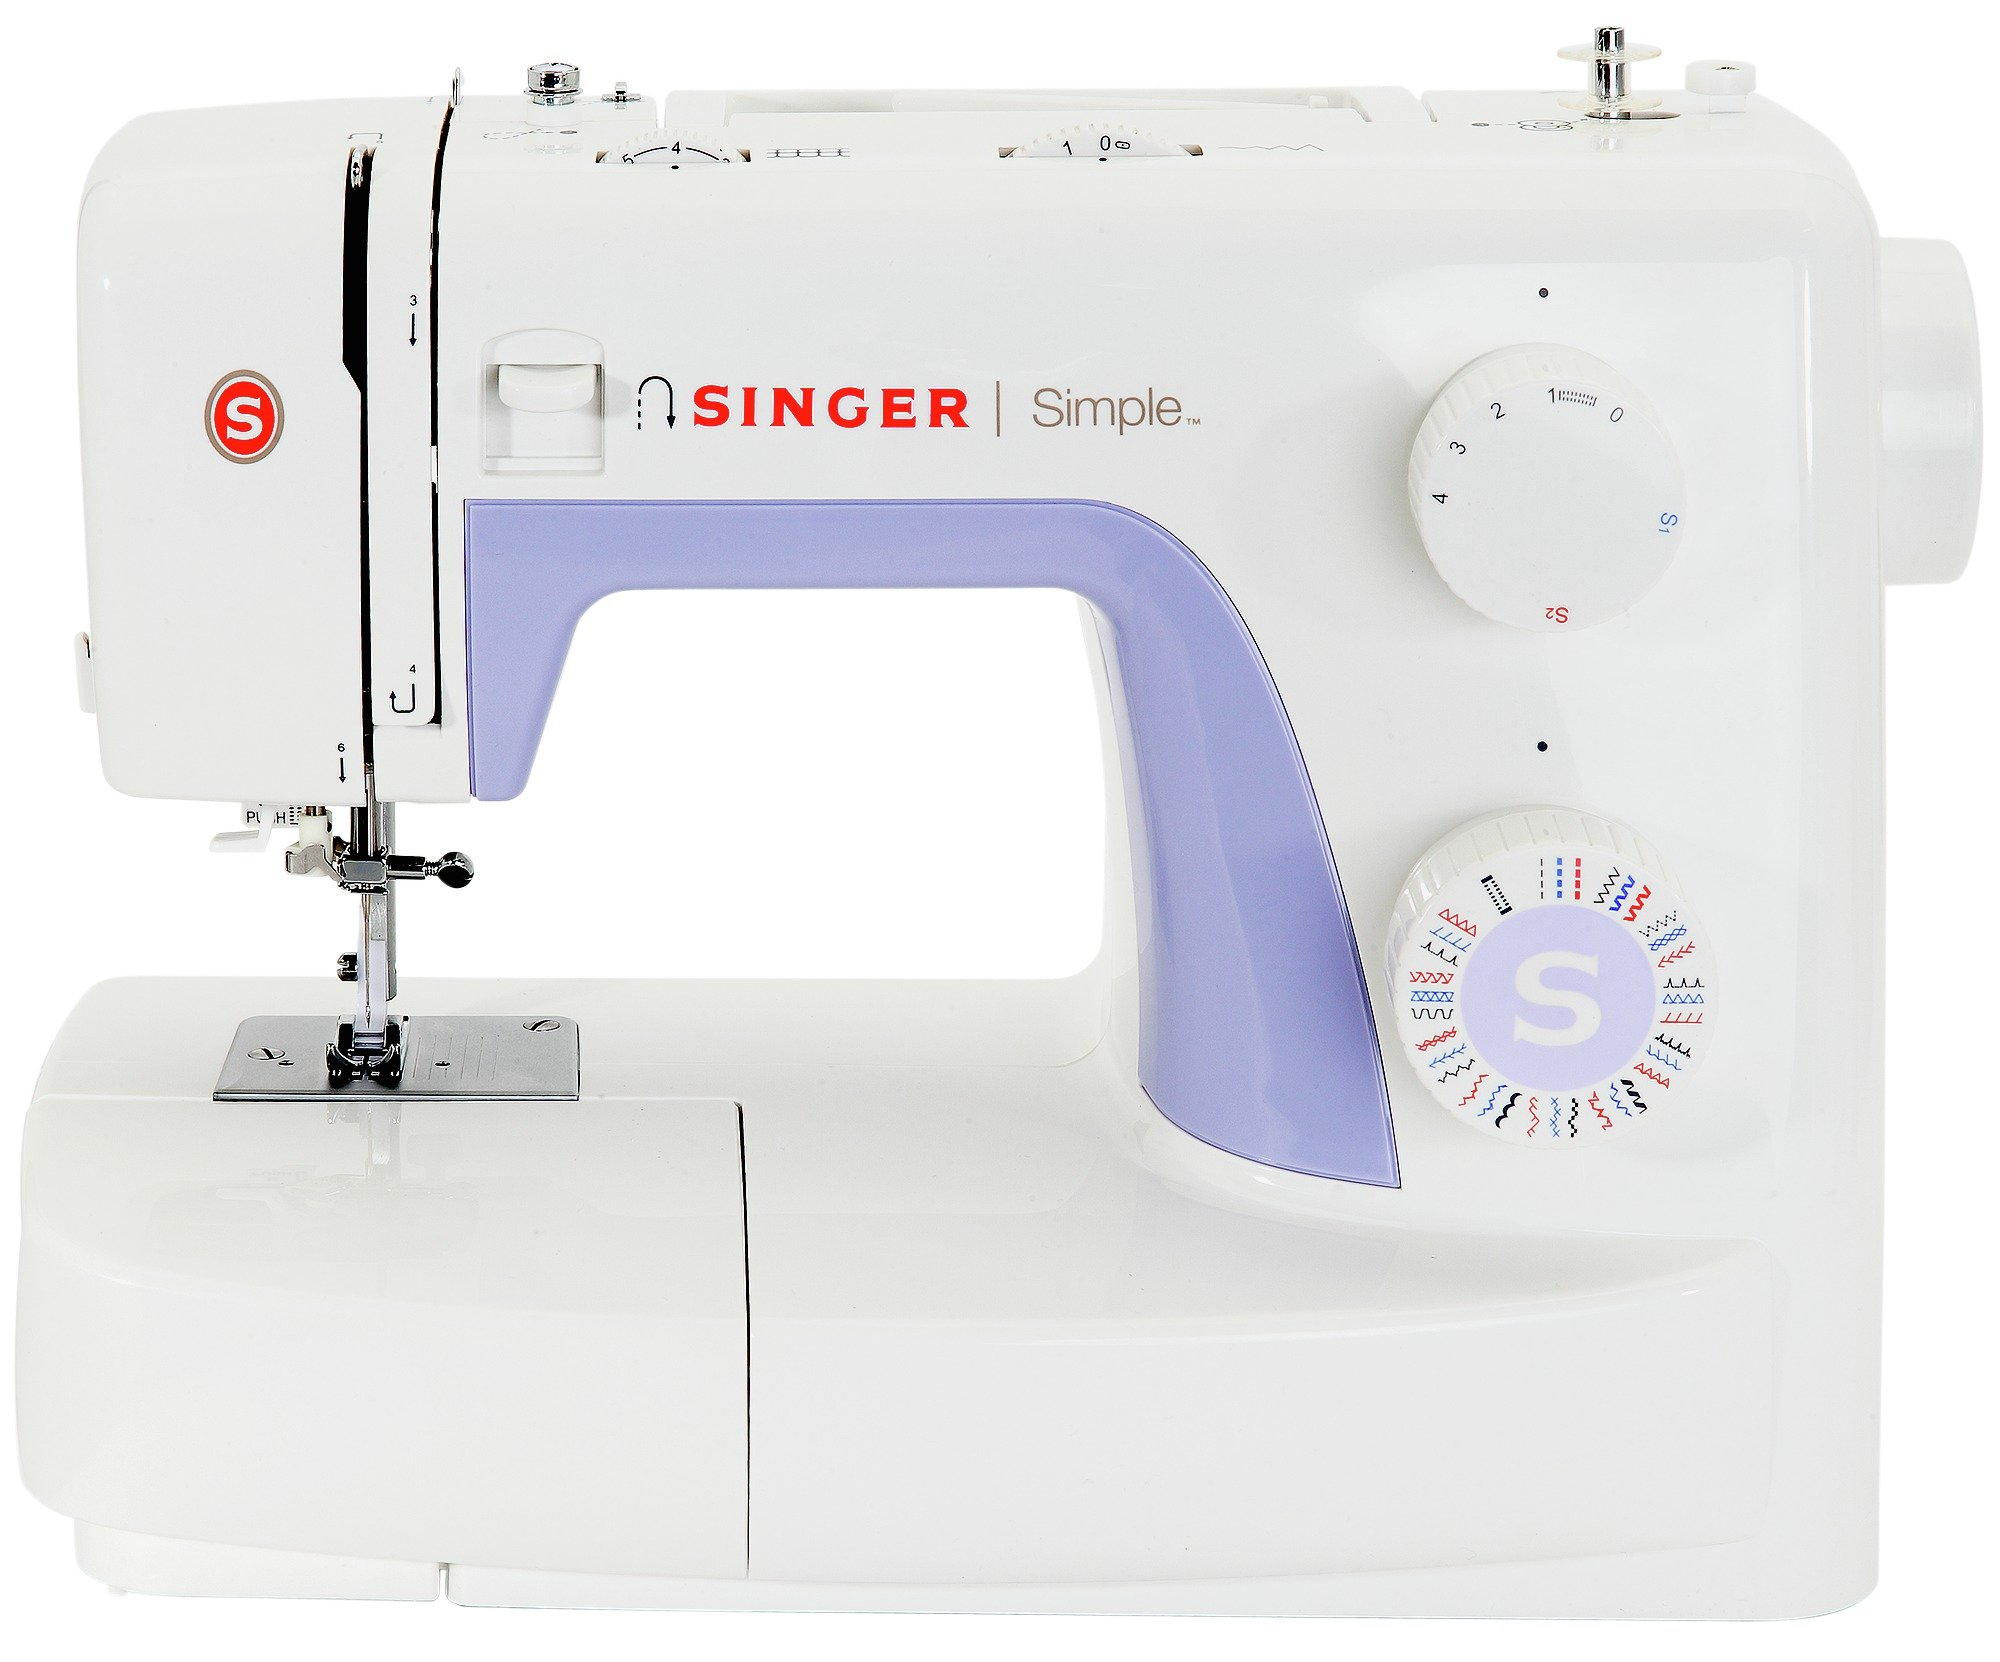 Sale on singer simple sewing machine now